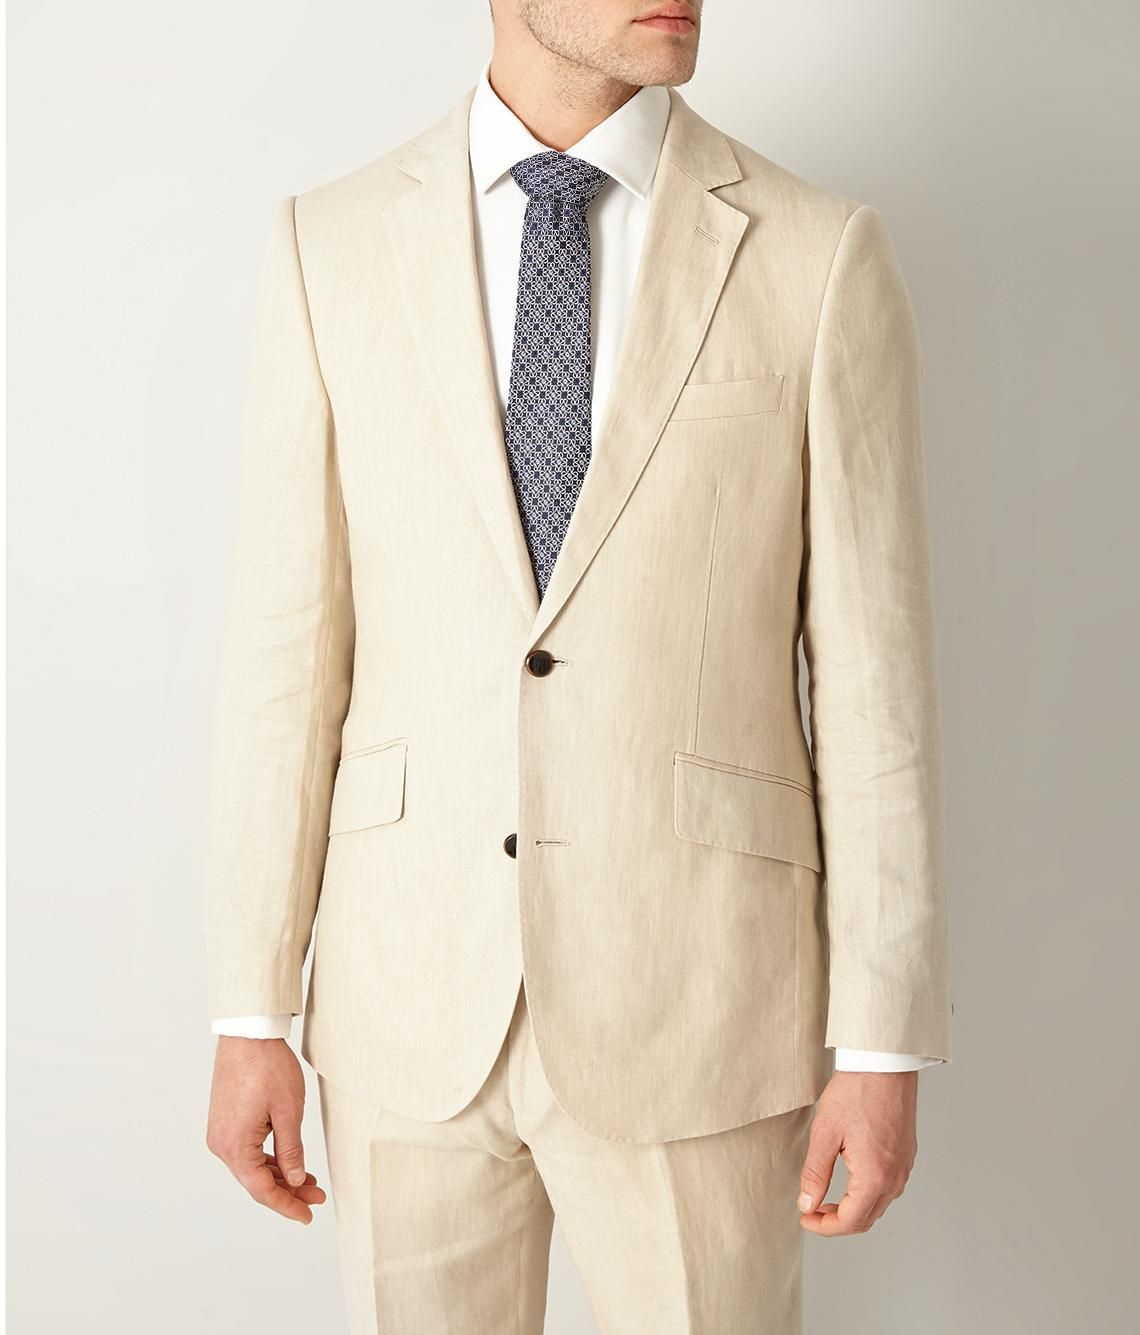 Contemporary Fit Beige Linen Suit Men S Suits Linen Suit Suits Clothes